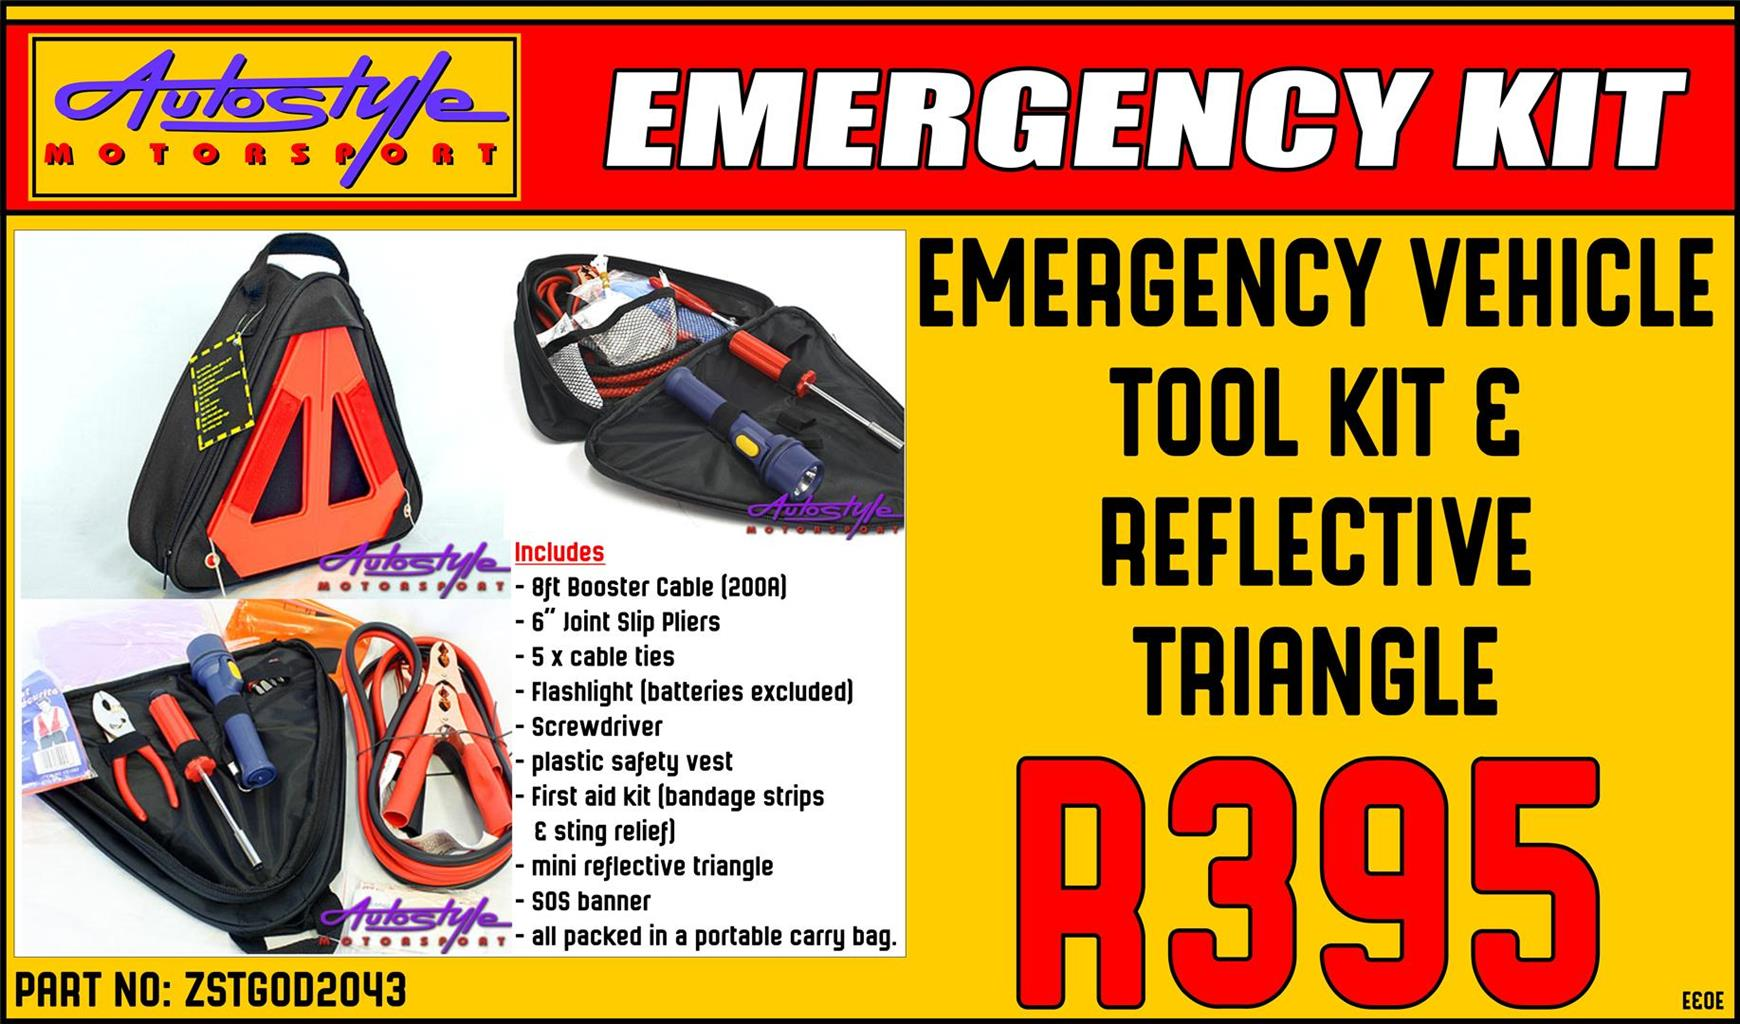 Emergency Vehicle Tool Kit and Reflective Triangle  includes - 8ft Booster Cable 200Amp - 6 inch Joint Slip Pliers - 5 x cable ties -